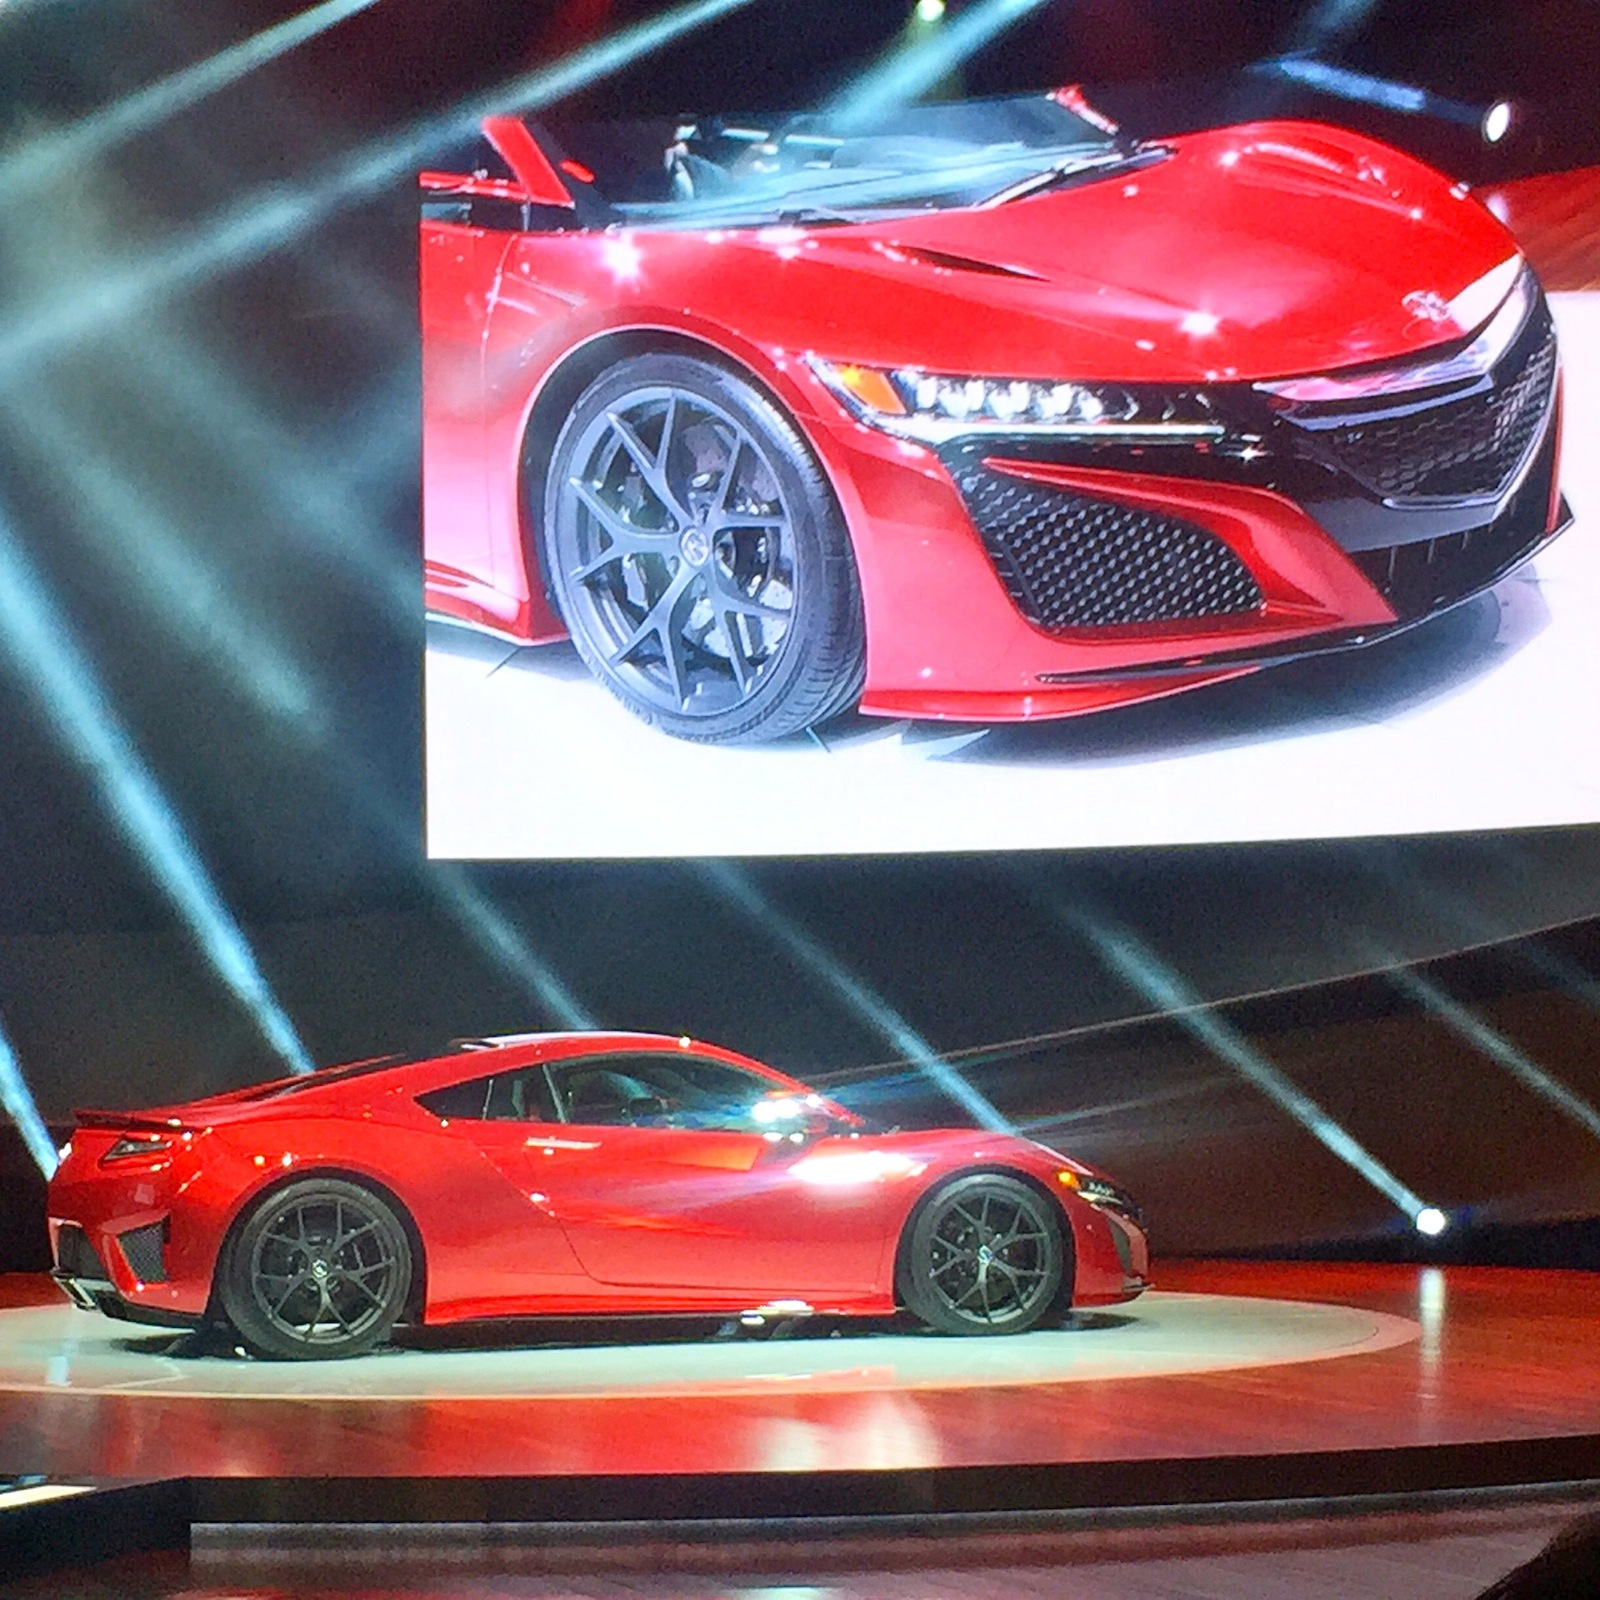 The New Acura NSX Is Just The Halo Car That The Brand